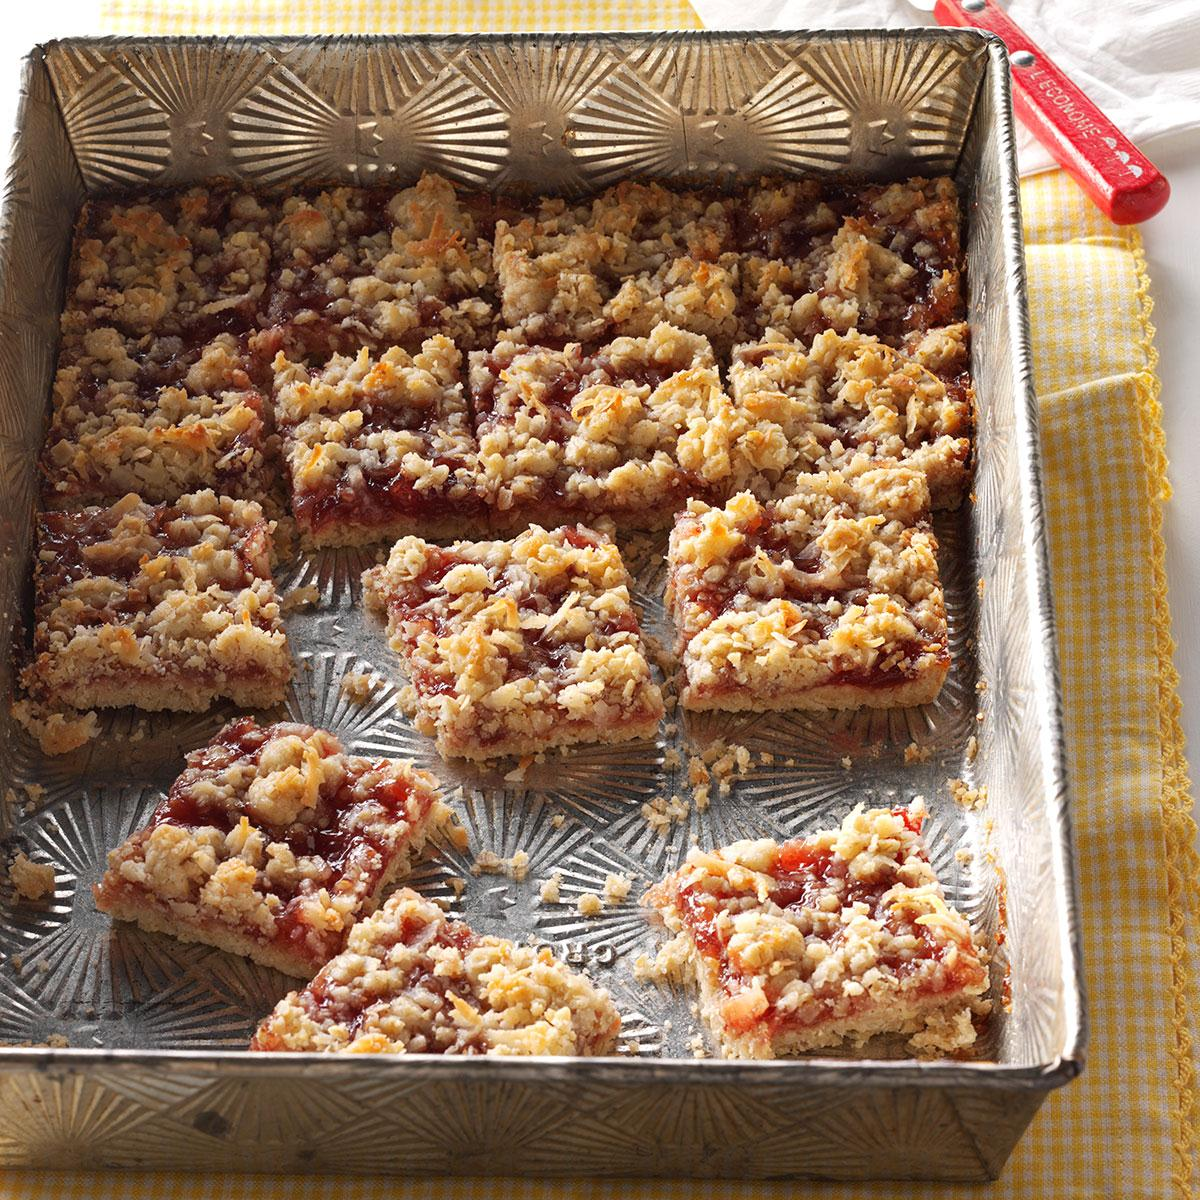 Forum on this topic: How to Make Strawberry Bars, how-to-make-strawberry-bars/